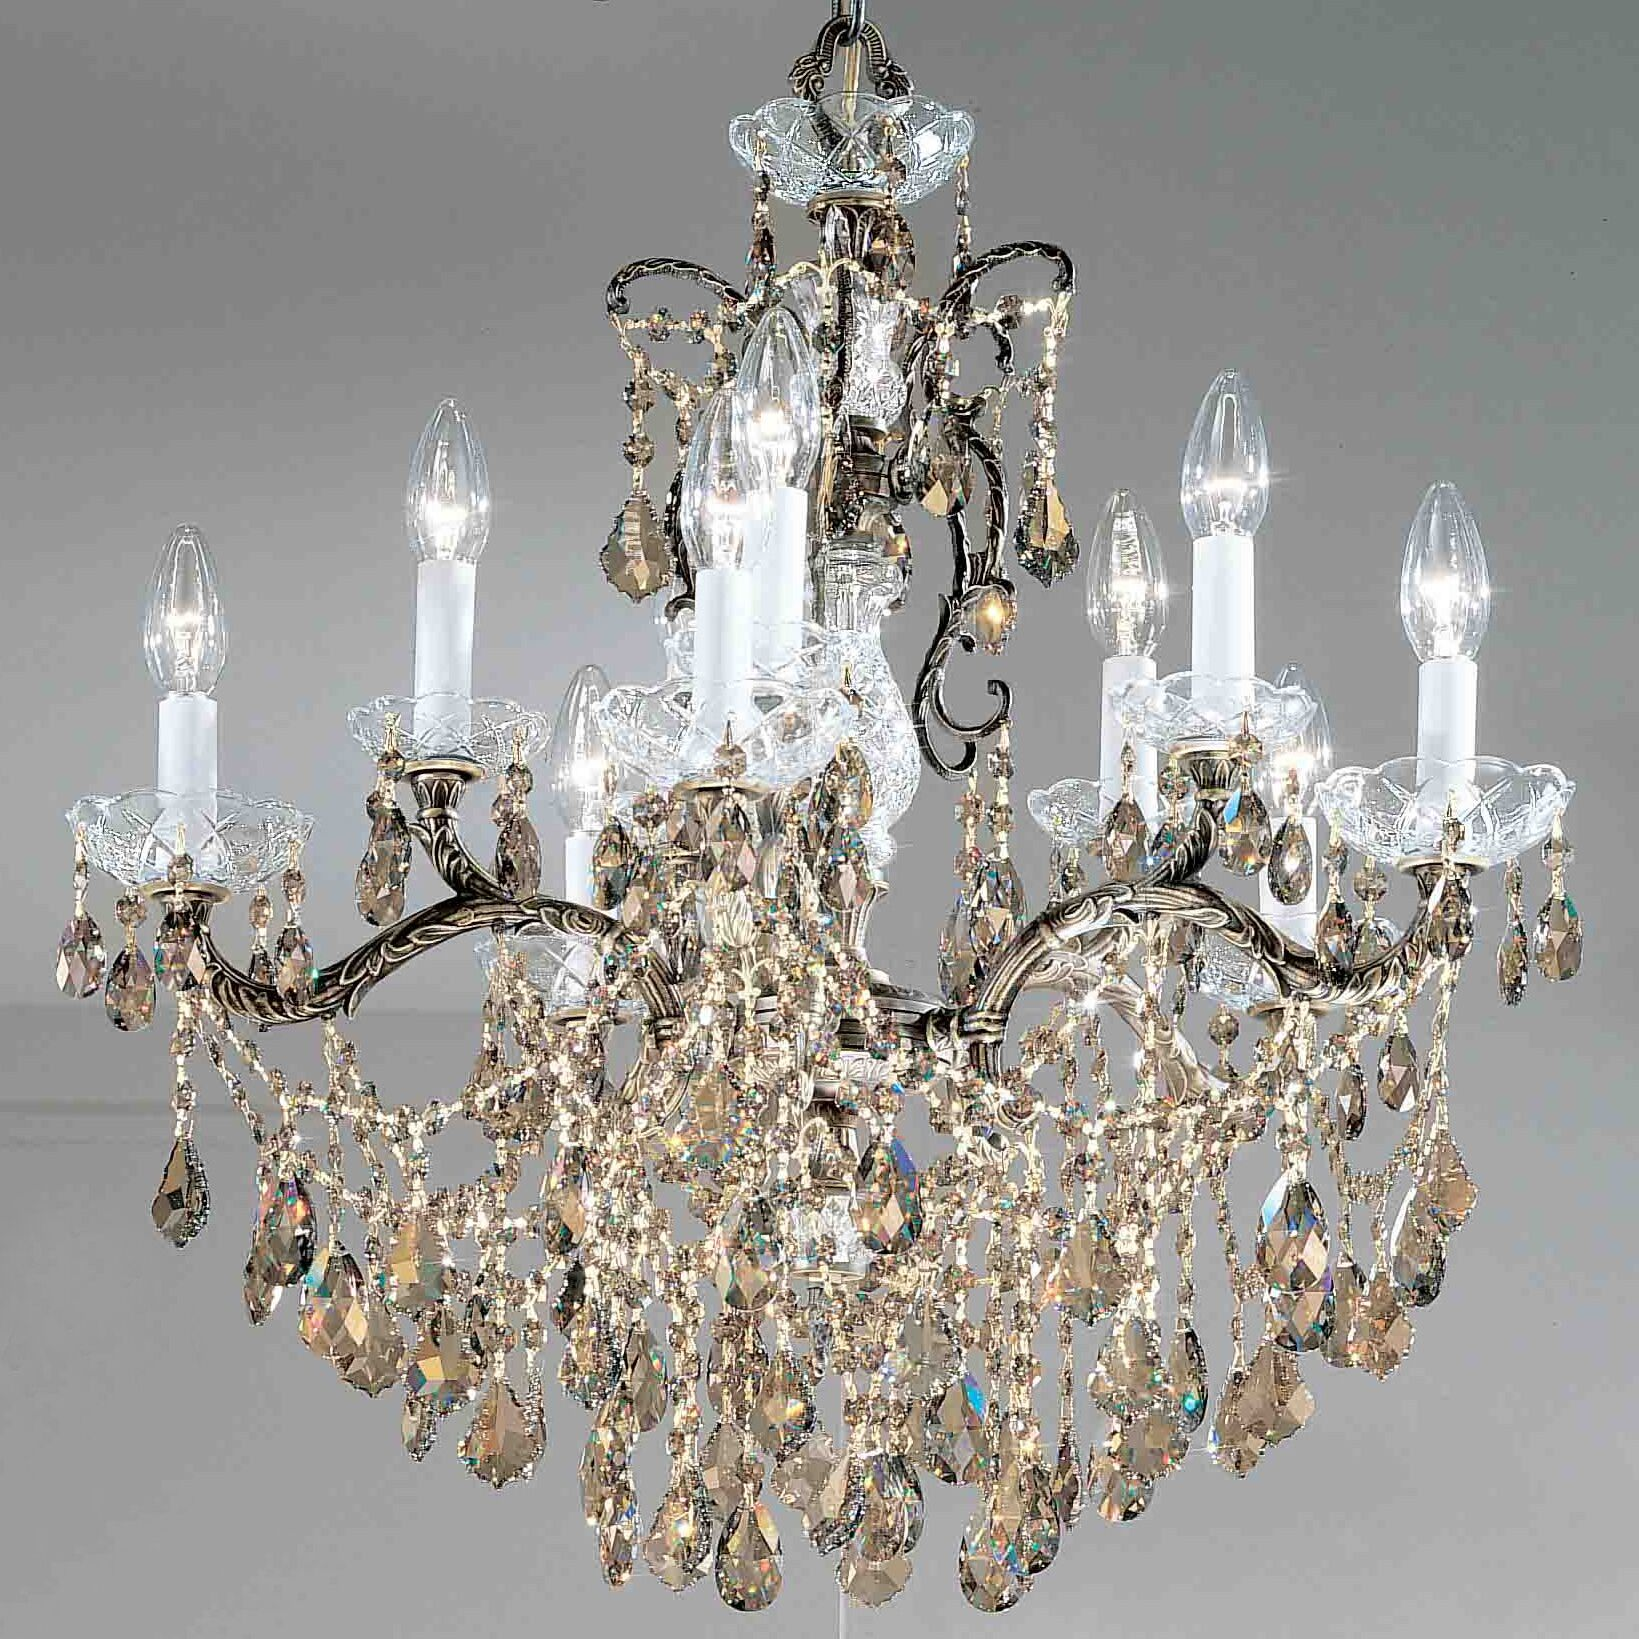 Madrid Imperial 10-Light Candle Style Chandelier Finish: Olde World Bronze, Crystal Type: Swarovski Spectra